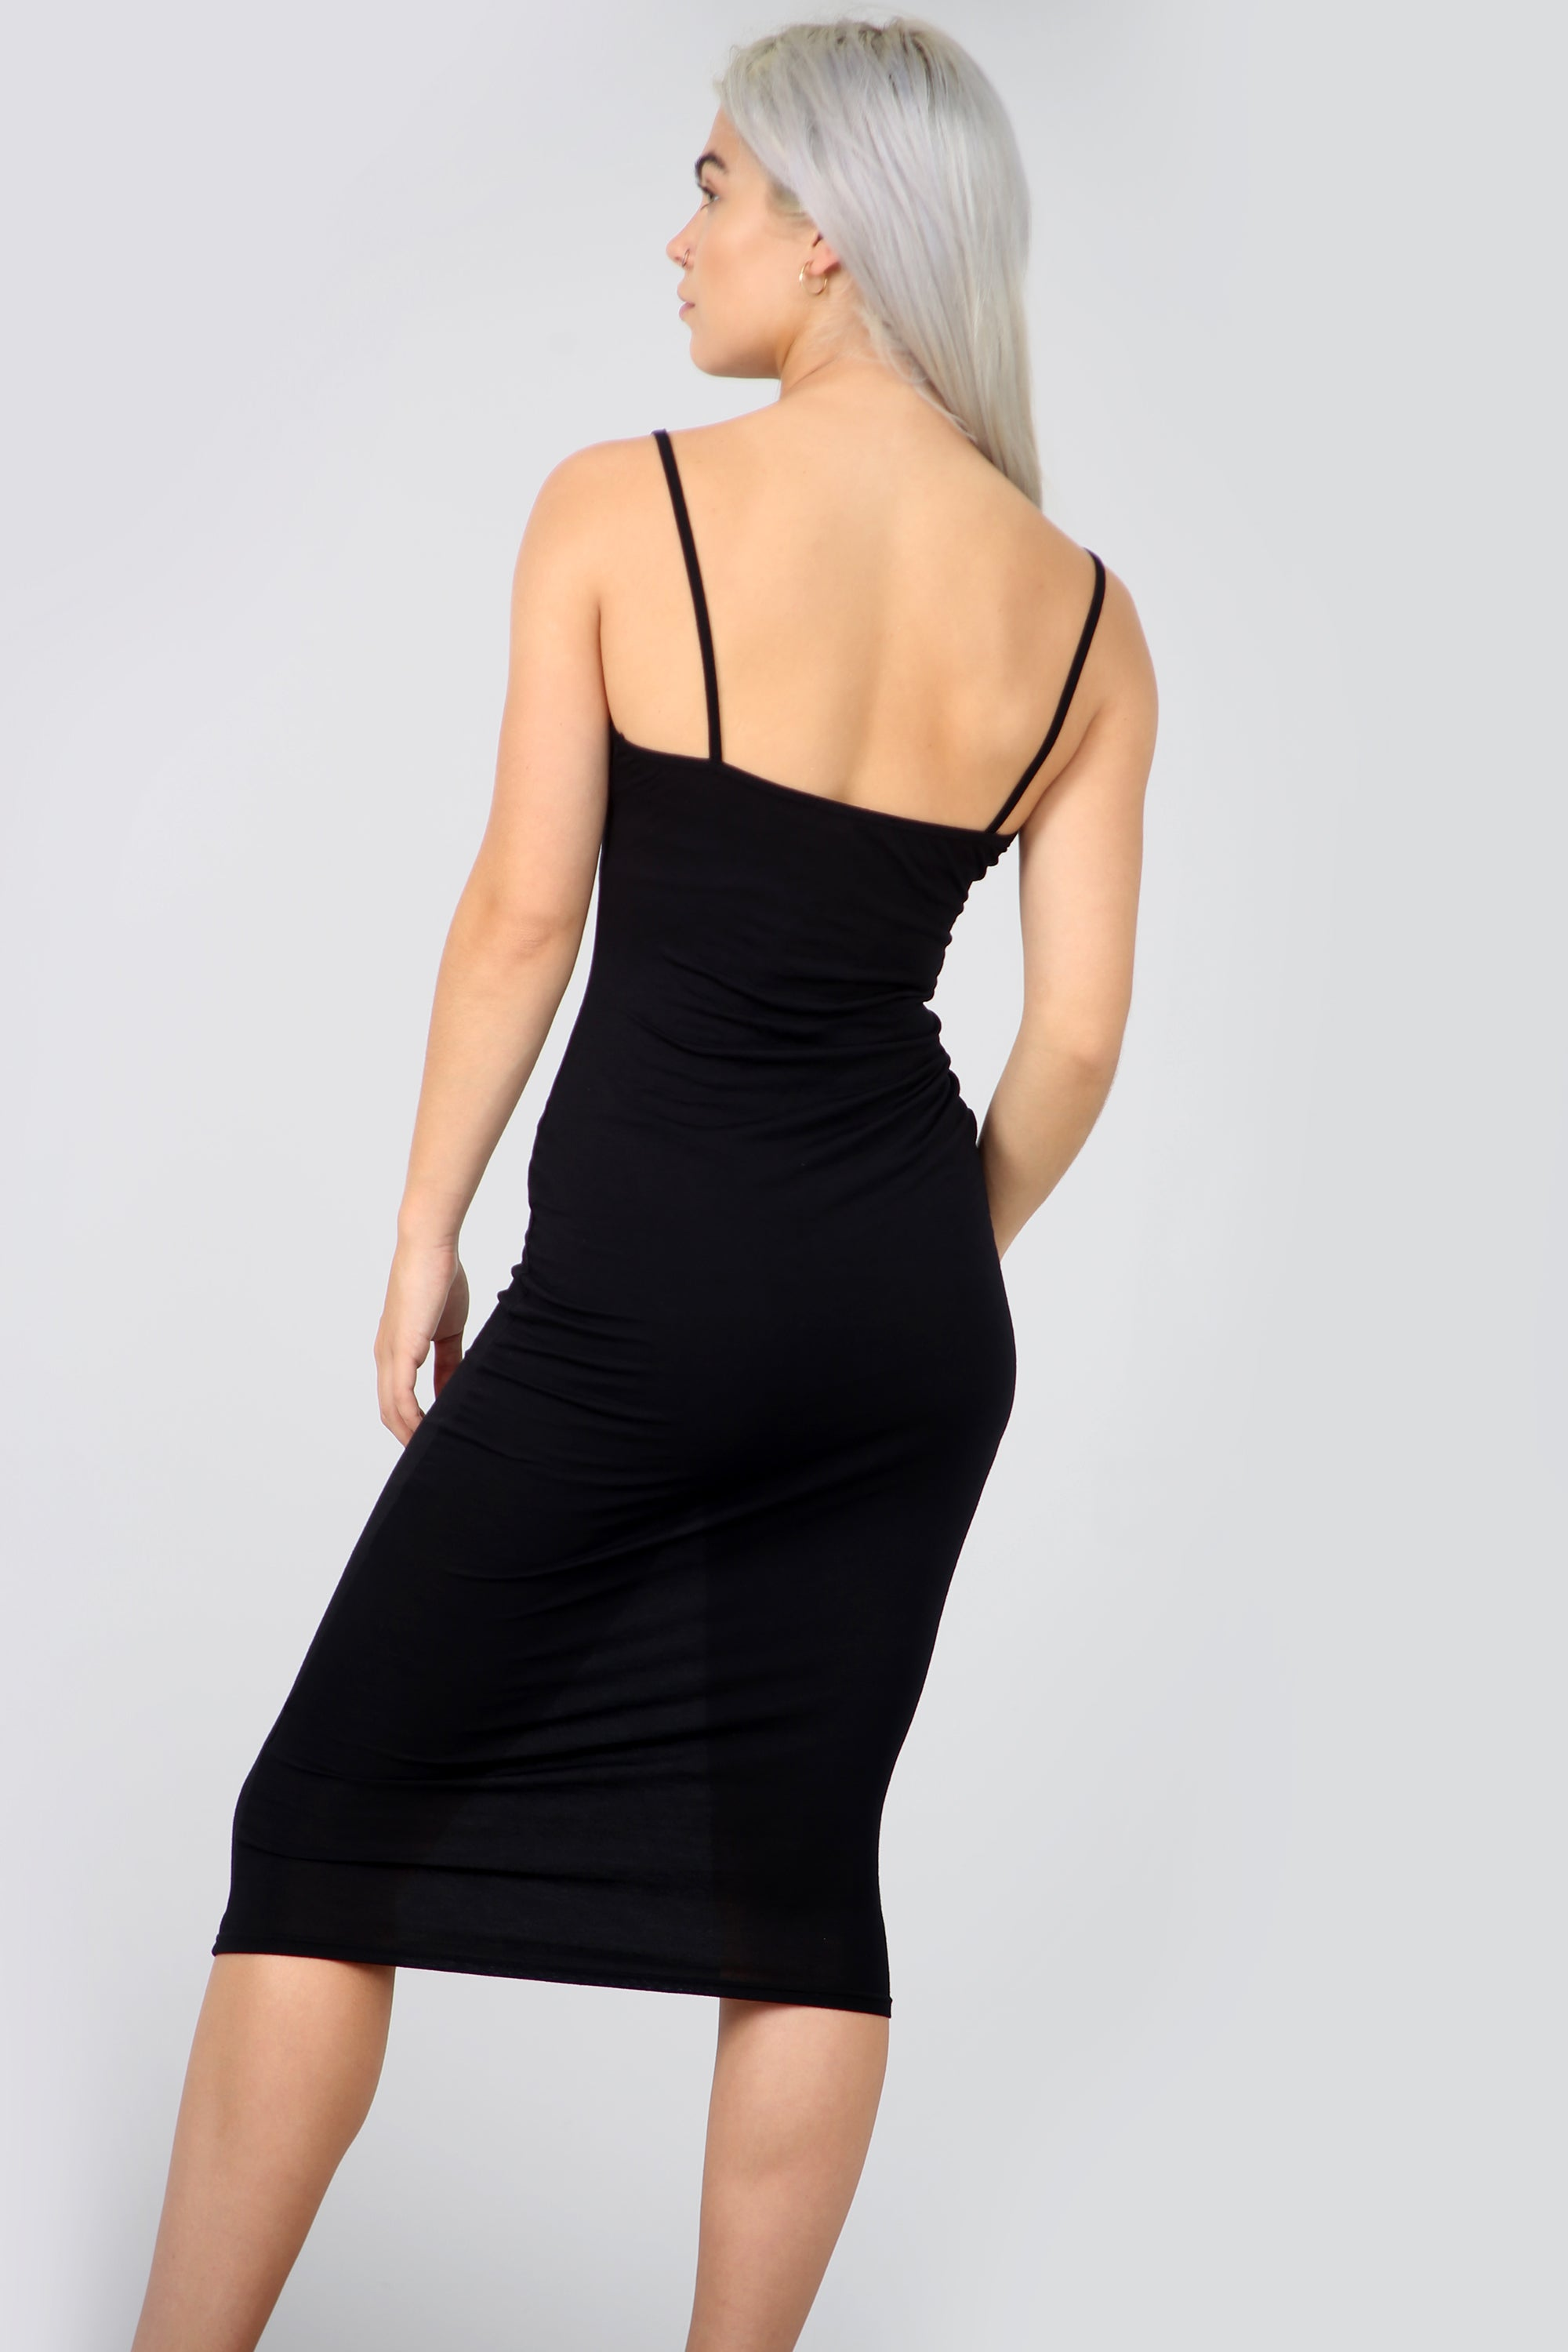 Charcoal Grey Strappy Basic Midi Bodycon Dress - bejealous-com